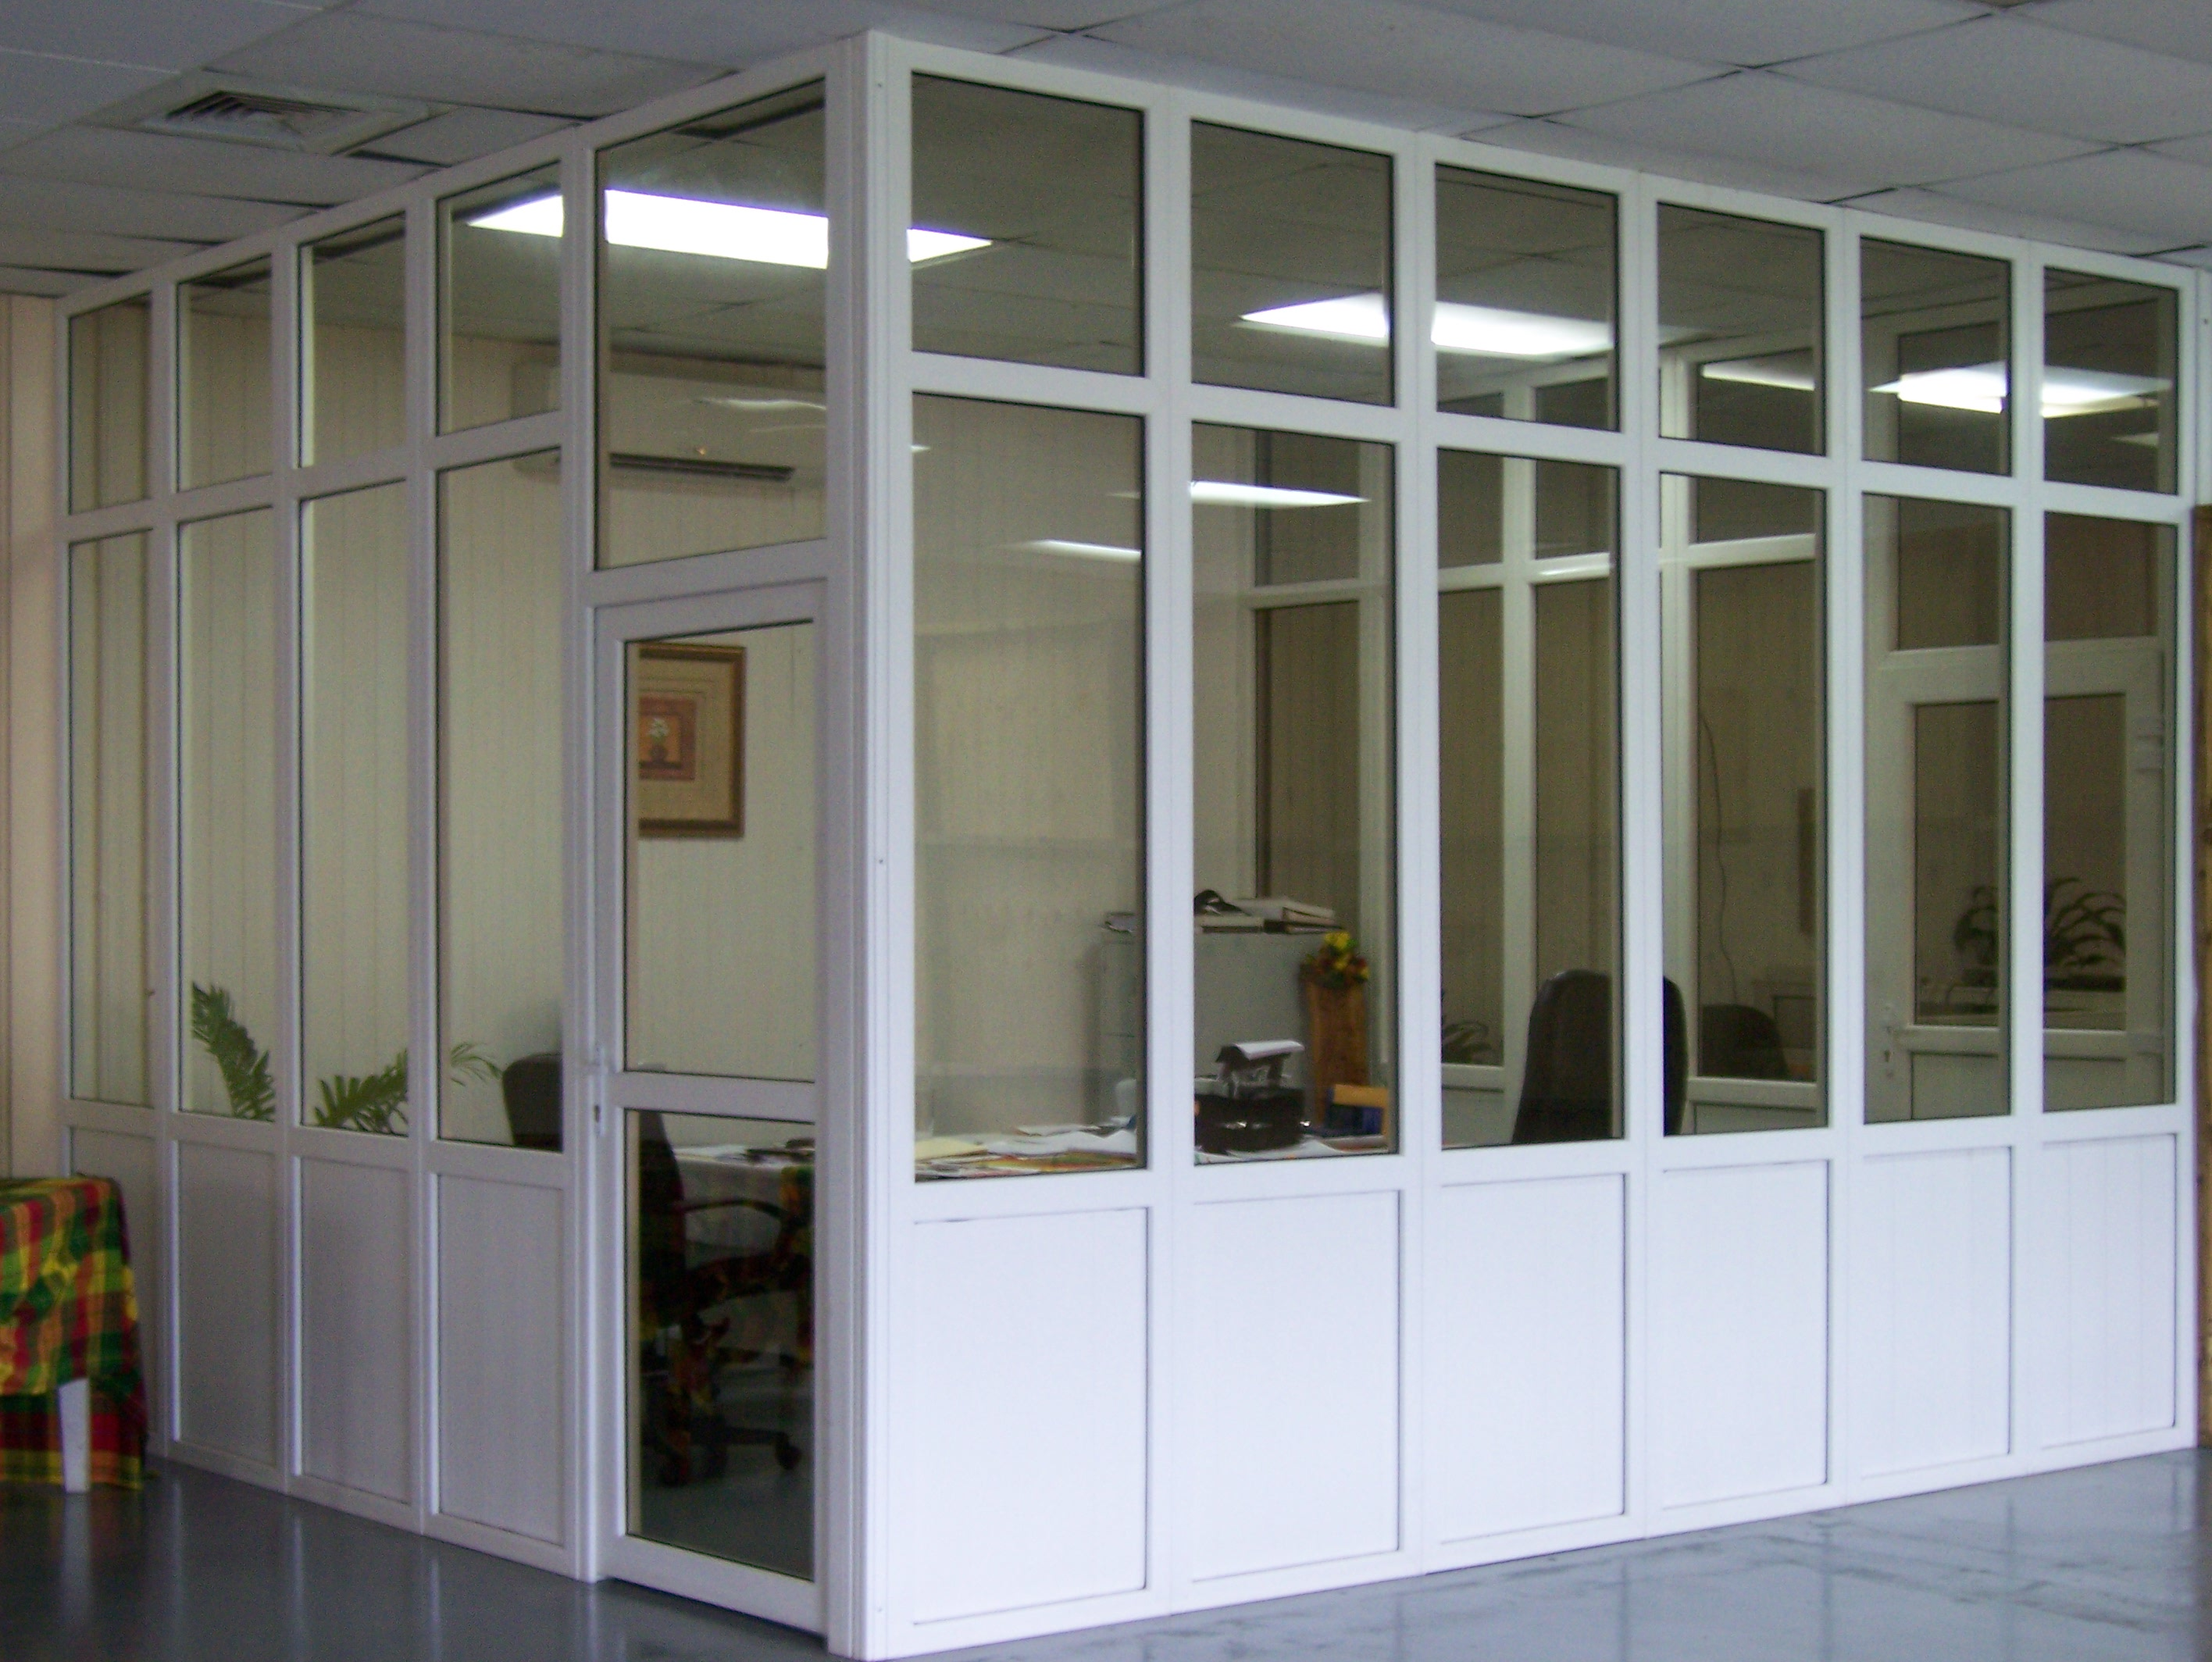 Aluminium Partitions Product : Official site of dragon windows